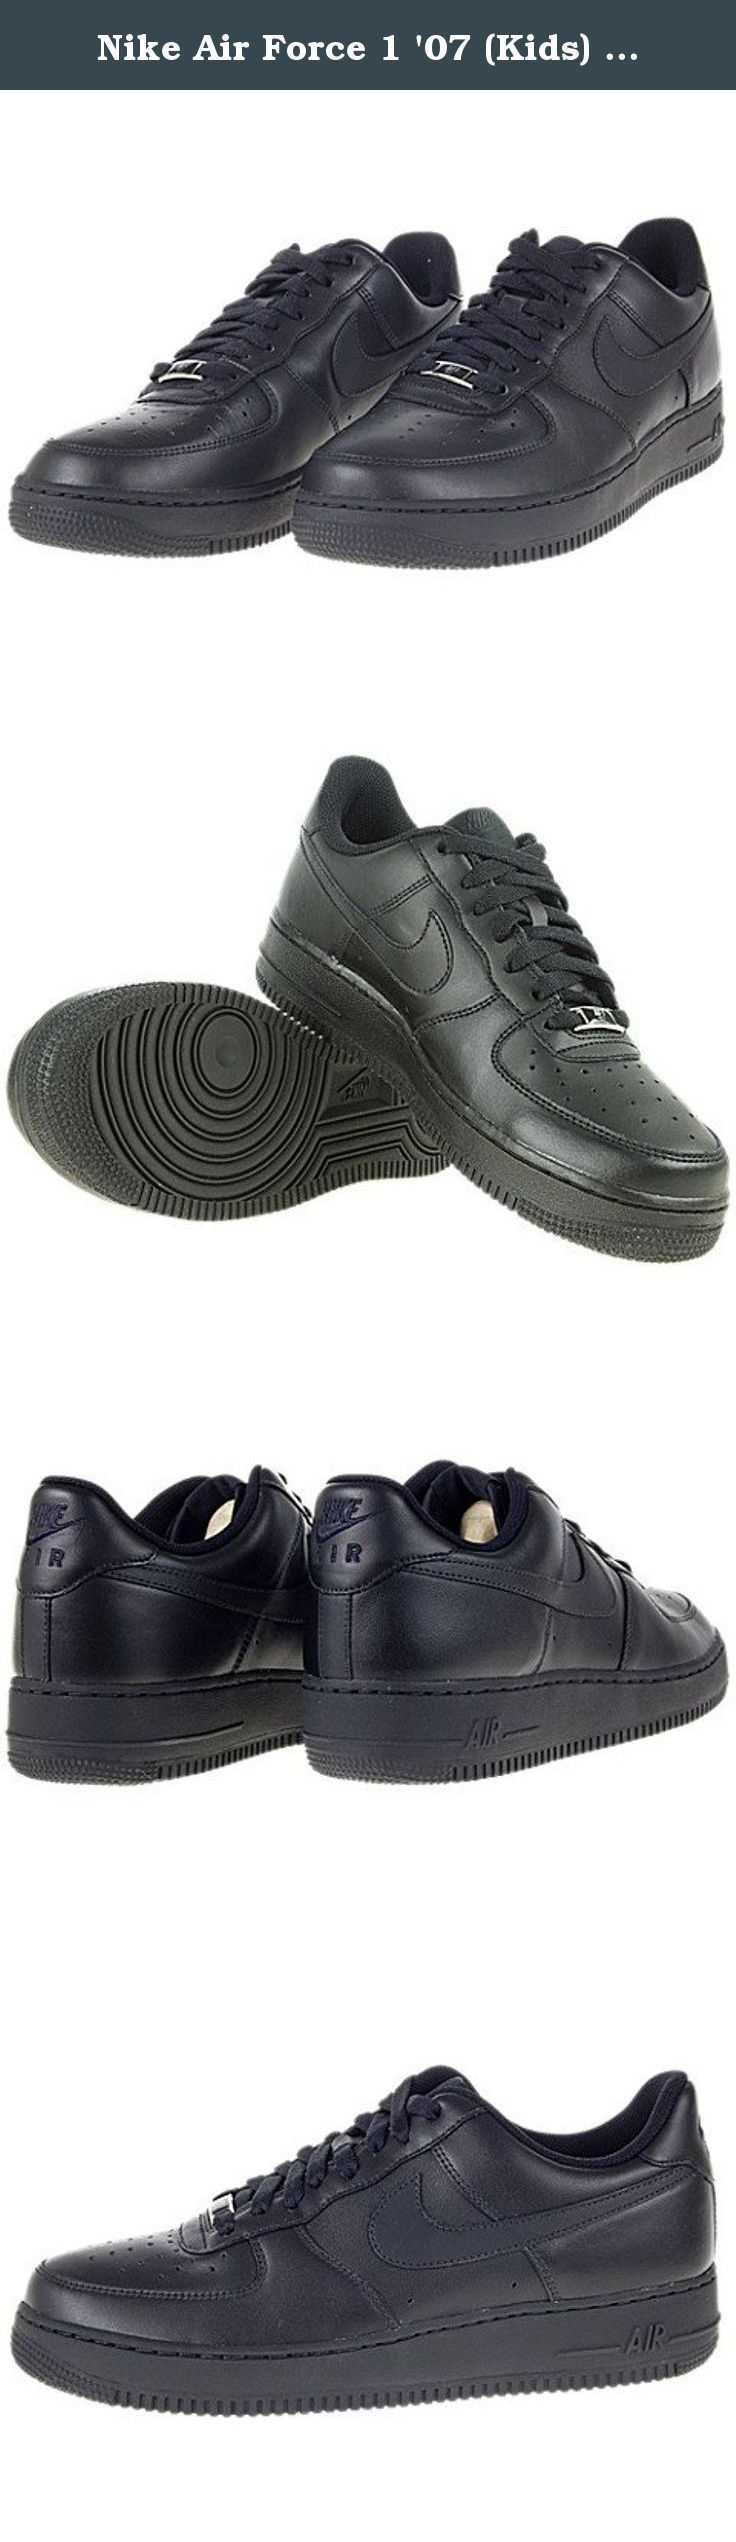 Nike Air Force 1 '07 (Kids) - Black / Black, 4.5 M US. Nike's Air Force 1 '07 youth retro shoes are one of if not the iconic basketball and retro shoe on the market today. They have been global leaders for 25 years, and just like the people that strap them on, they aren't going to be stopped anytime soon. If you are looking for the perfect shoe, the Nike's Air Force 1 '07 youth retro shoes are considered by a lot of shoe aficionados to be such a holy grail of footwear. The nice thing is…